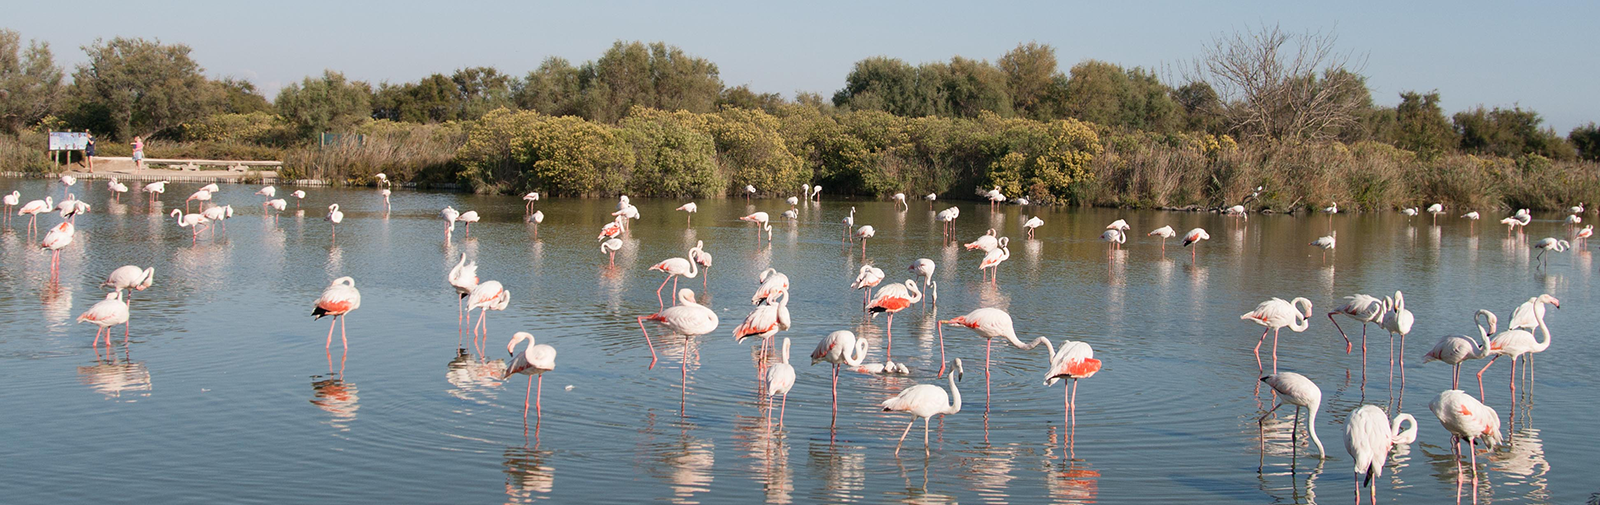 Camargue - Flamants Rose